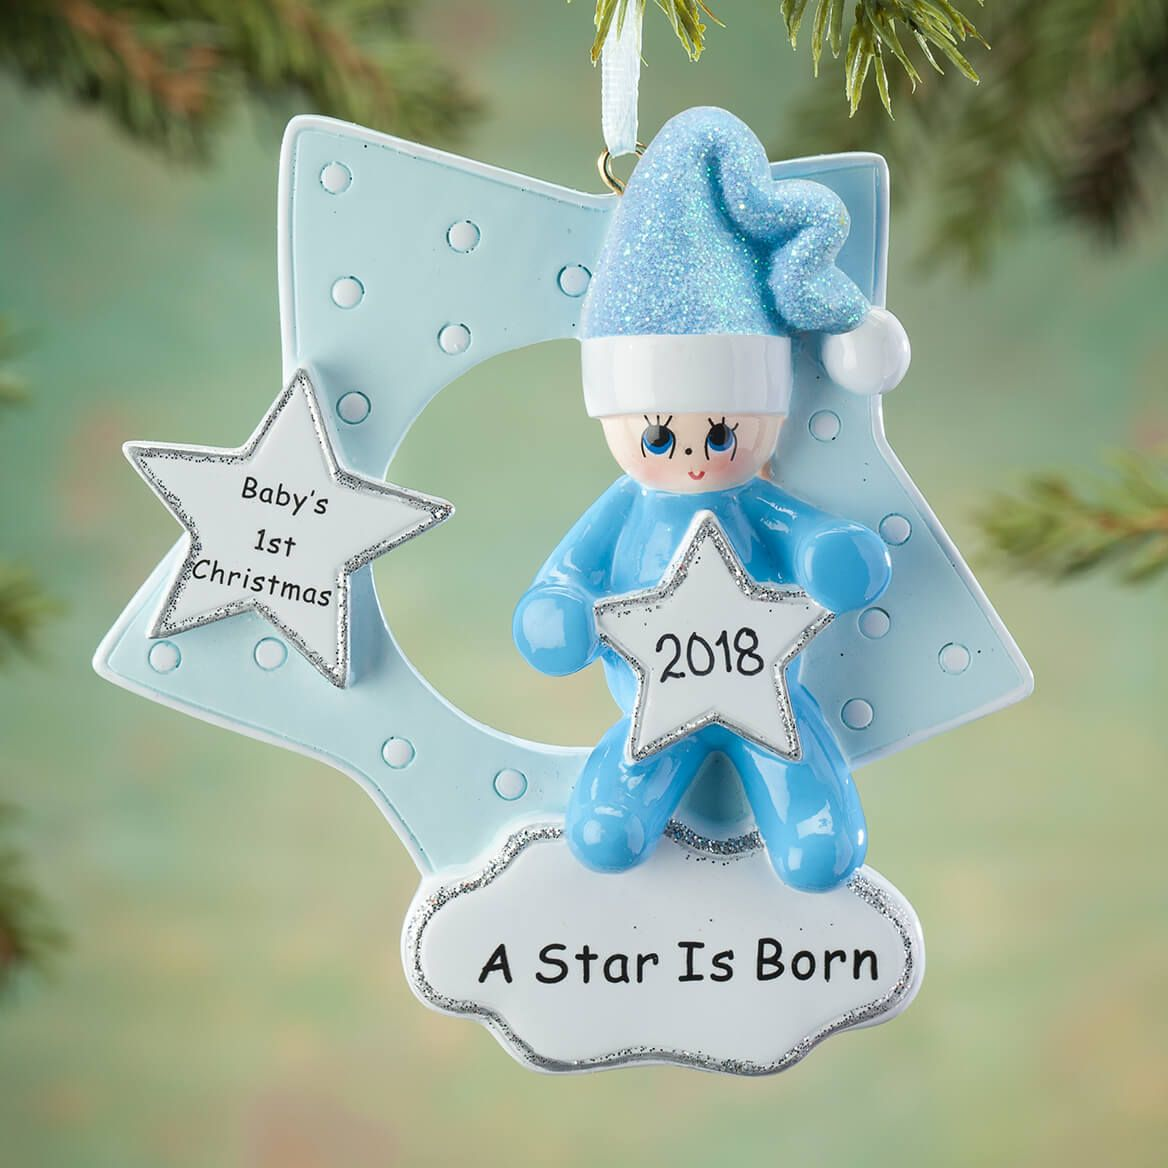 e91ae1db24409 Commemorate baby s first Christmas with our Personalized A Star Is Born  Ornament. Celebrating the year